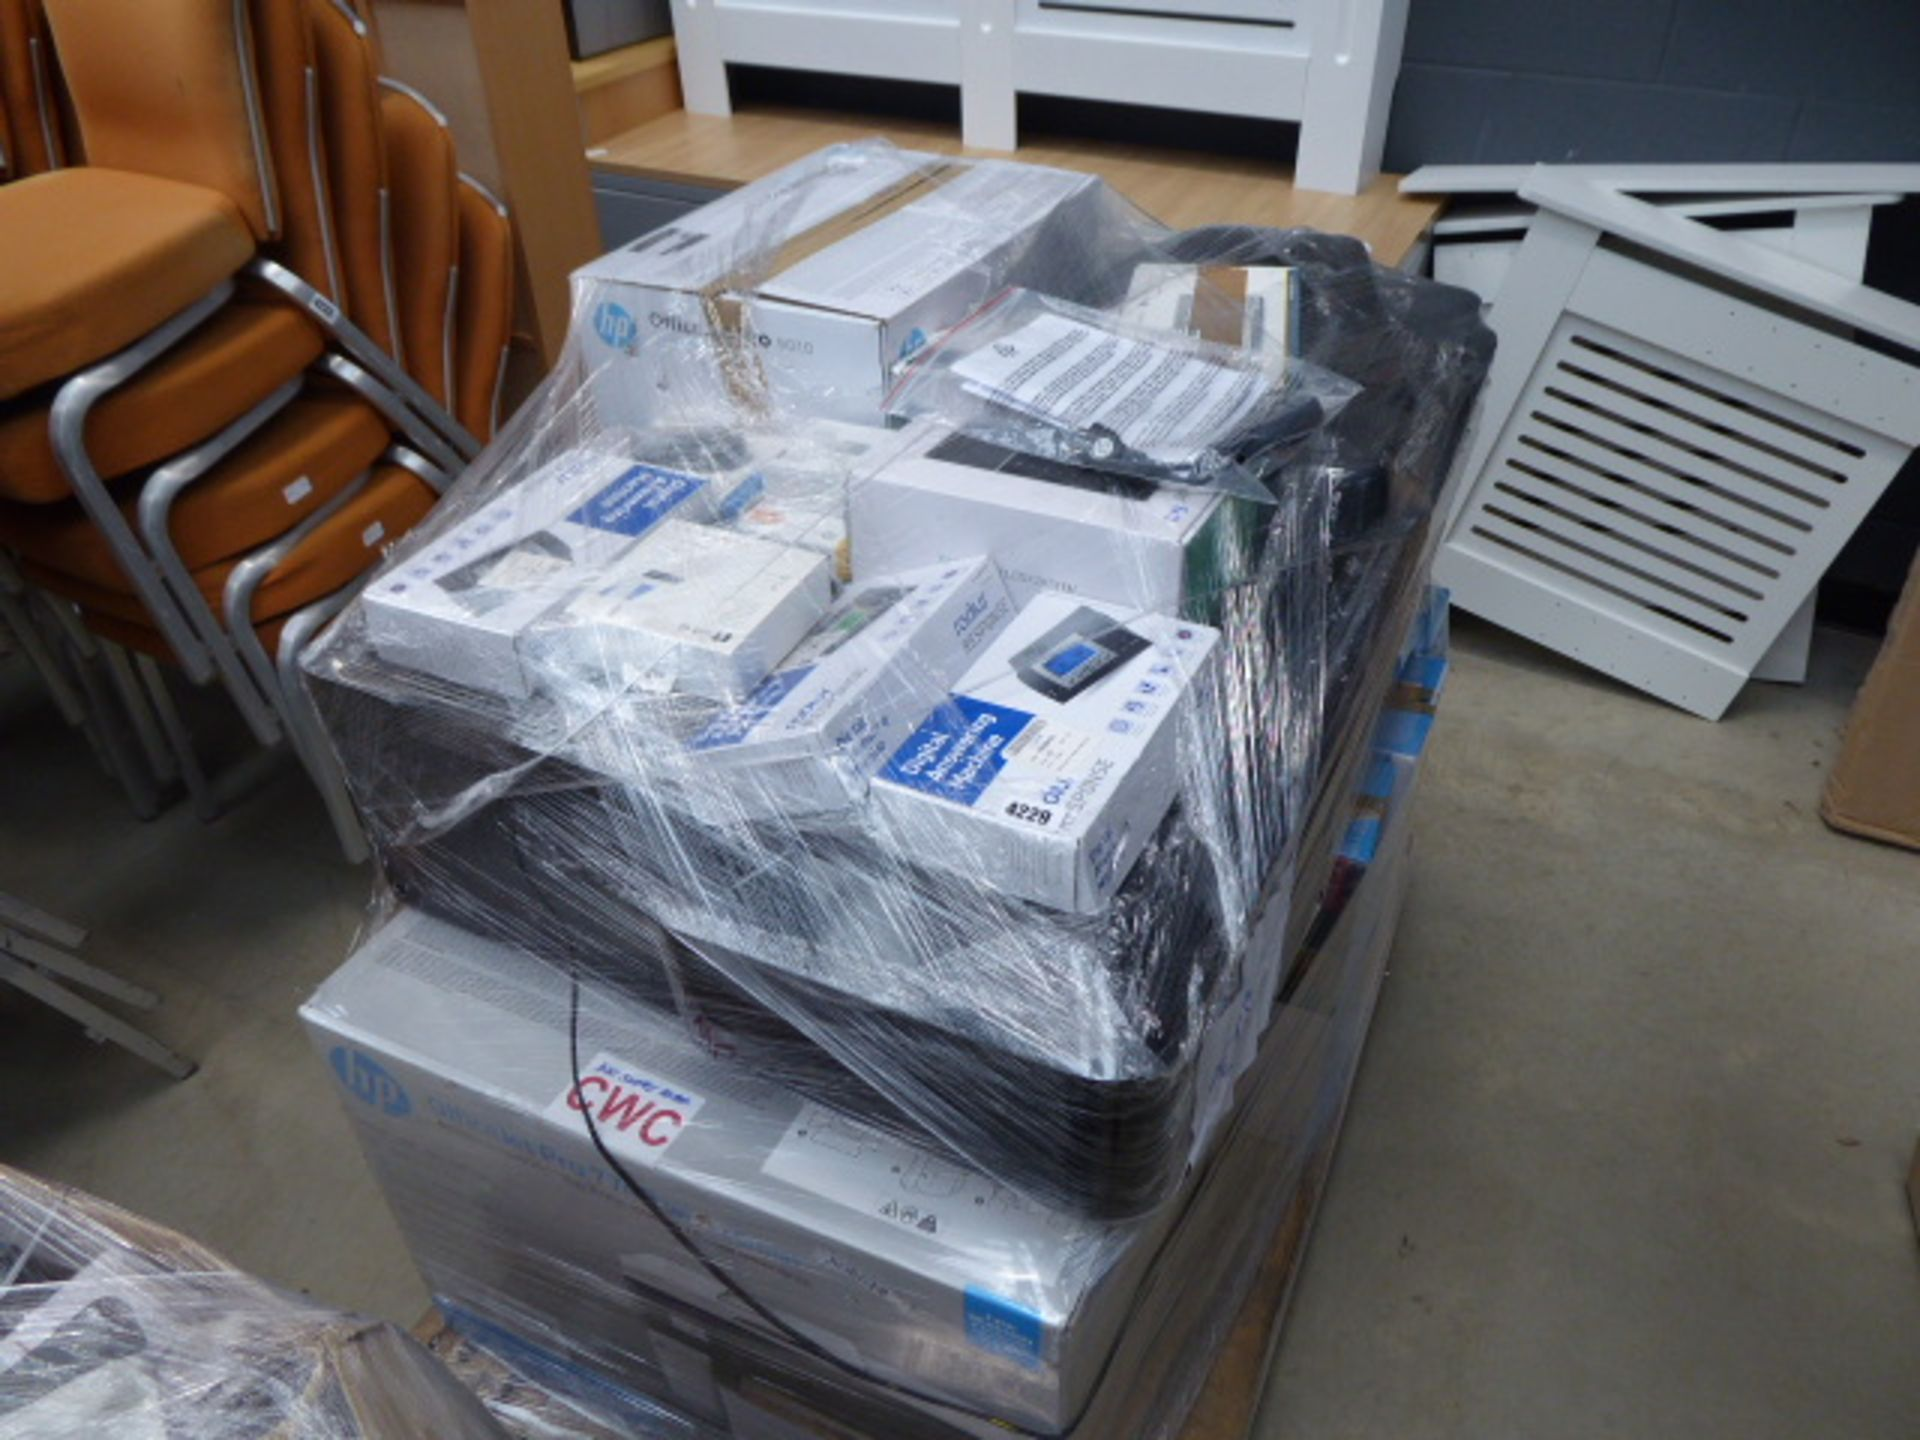 Lot 4229 - Pallet of answering machines, faxes, printers etc